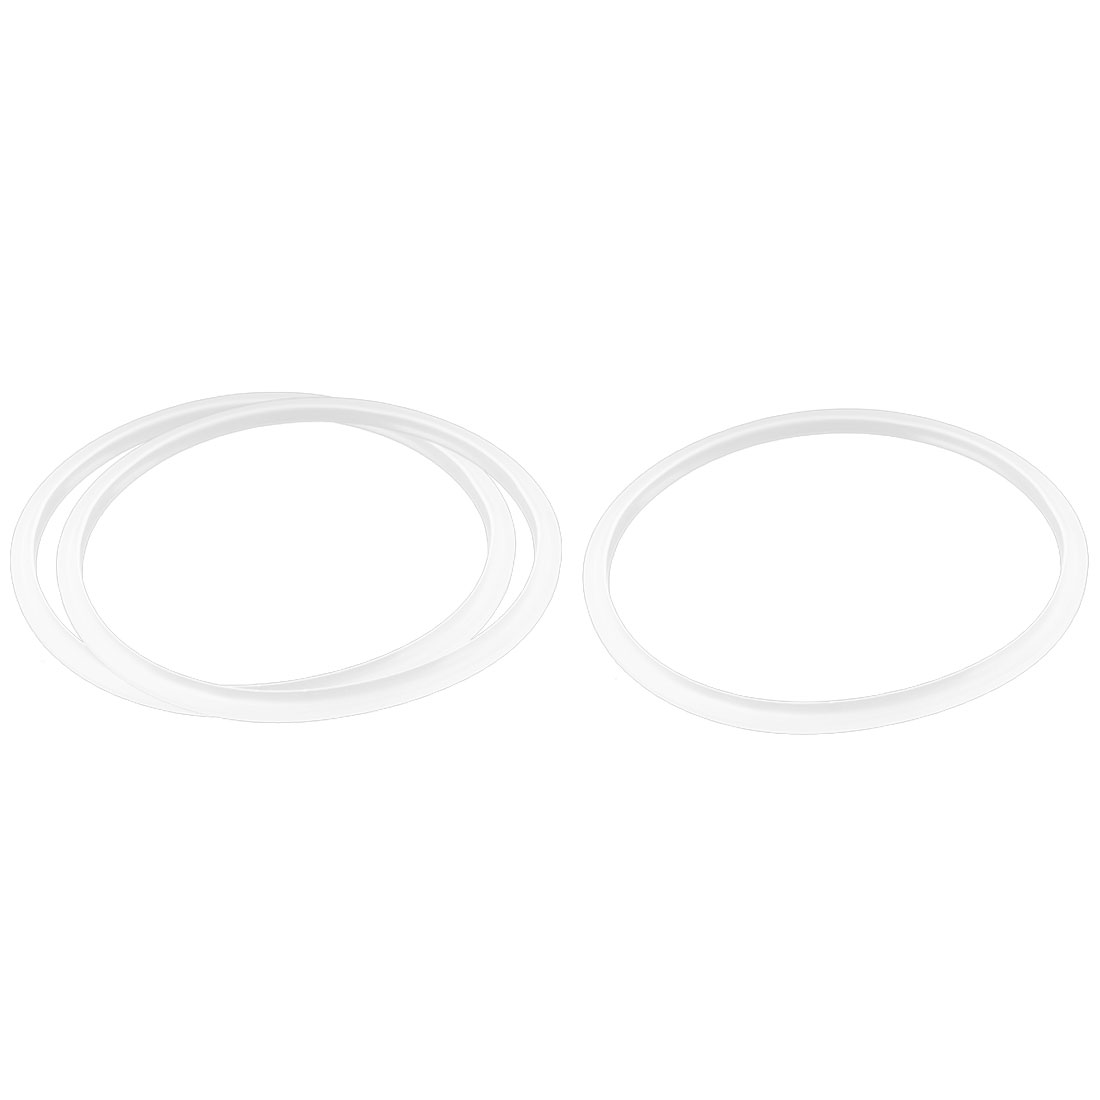 Pressure Cooker Gasket Sealing Ring Spare Part 20cm Inner Dia Clear White 3 Pcs